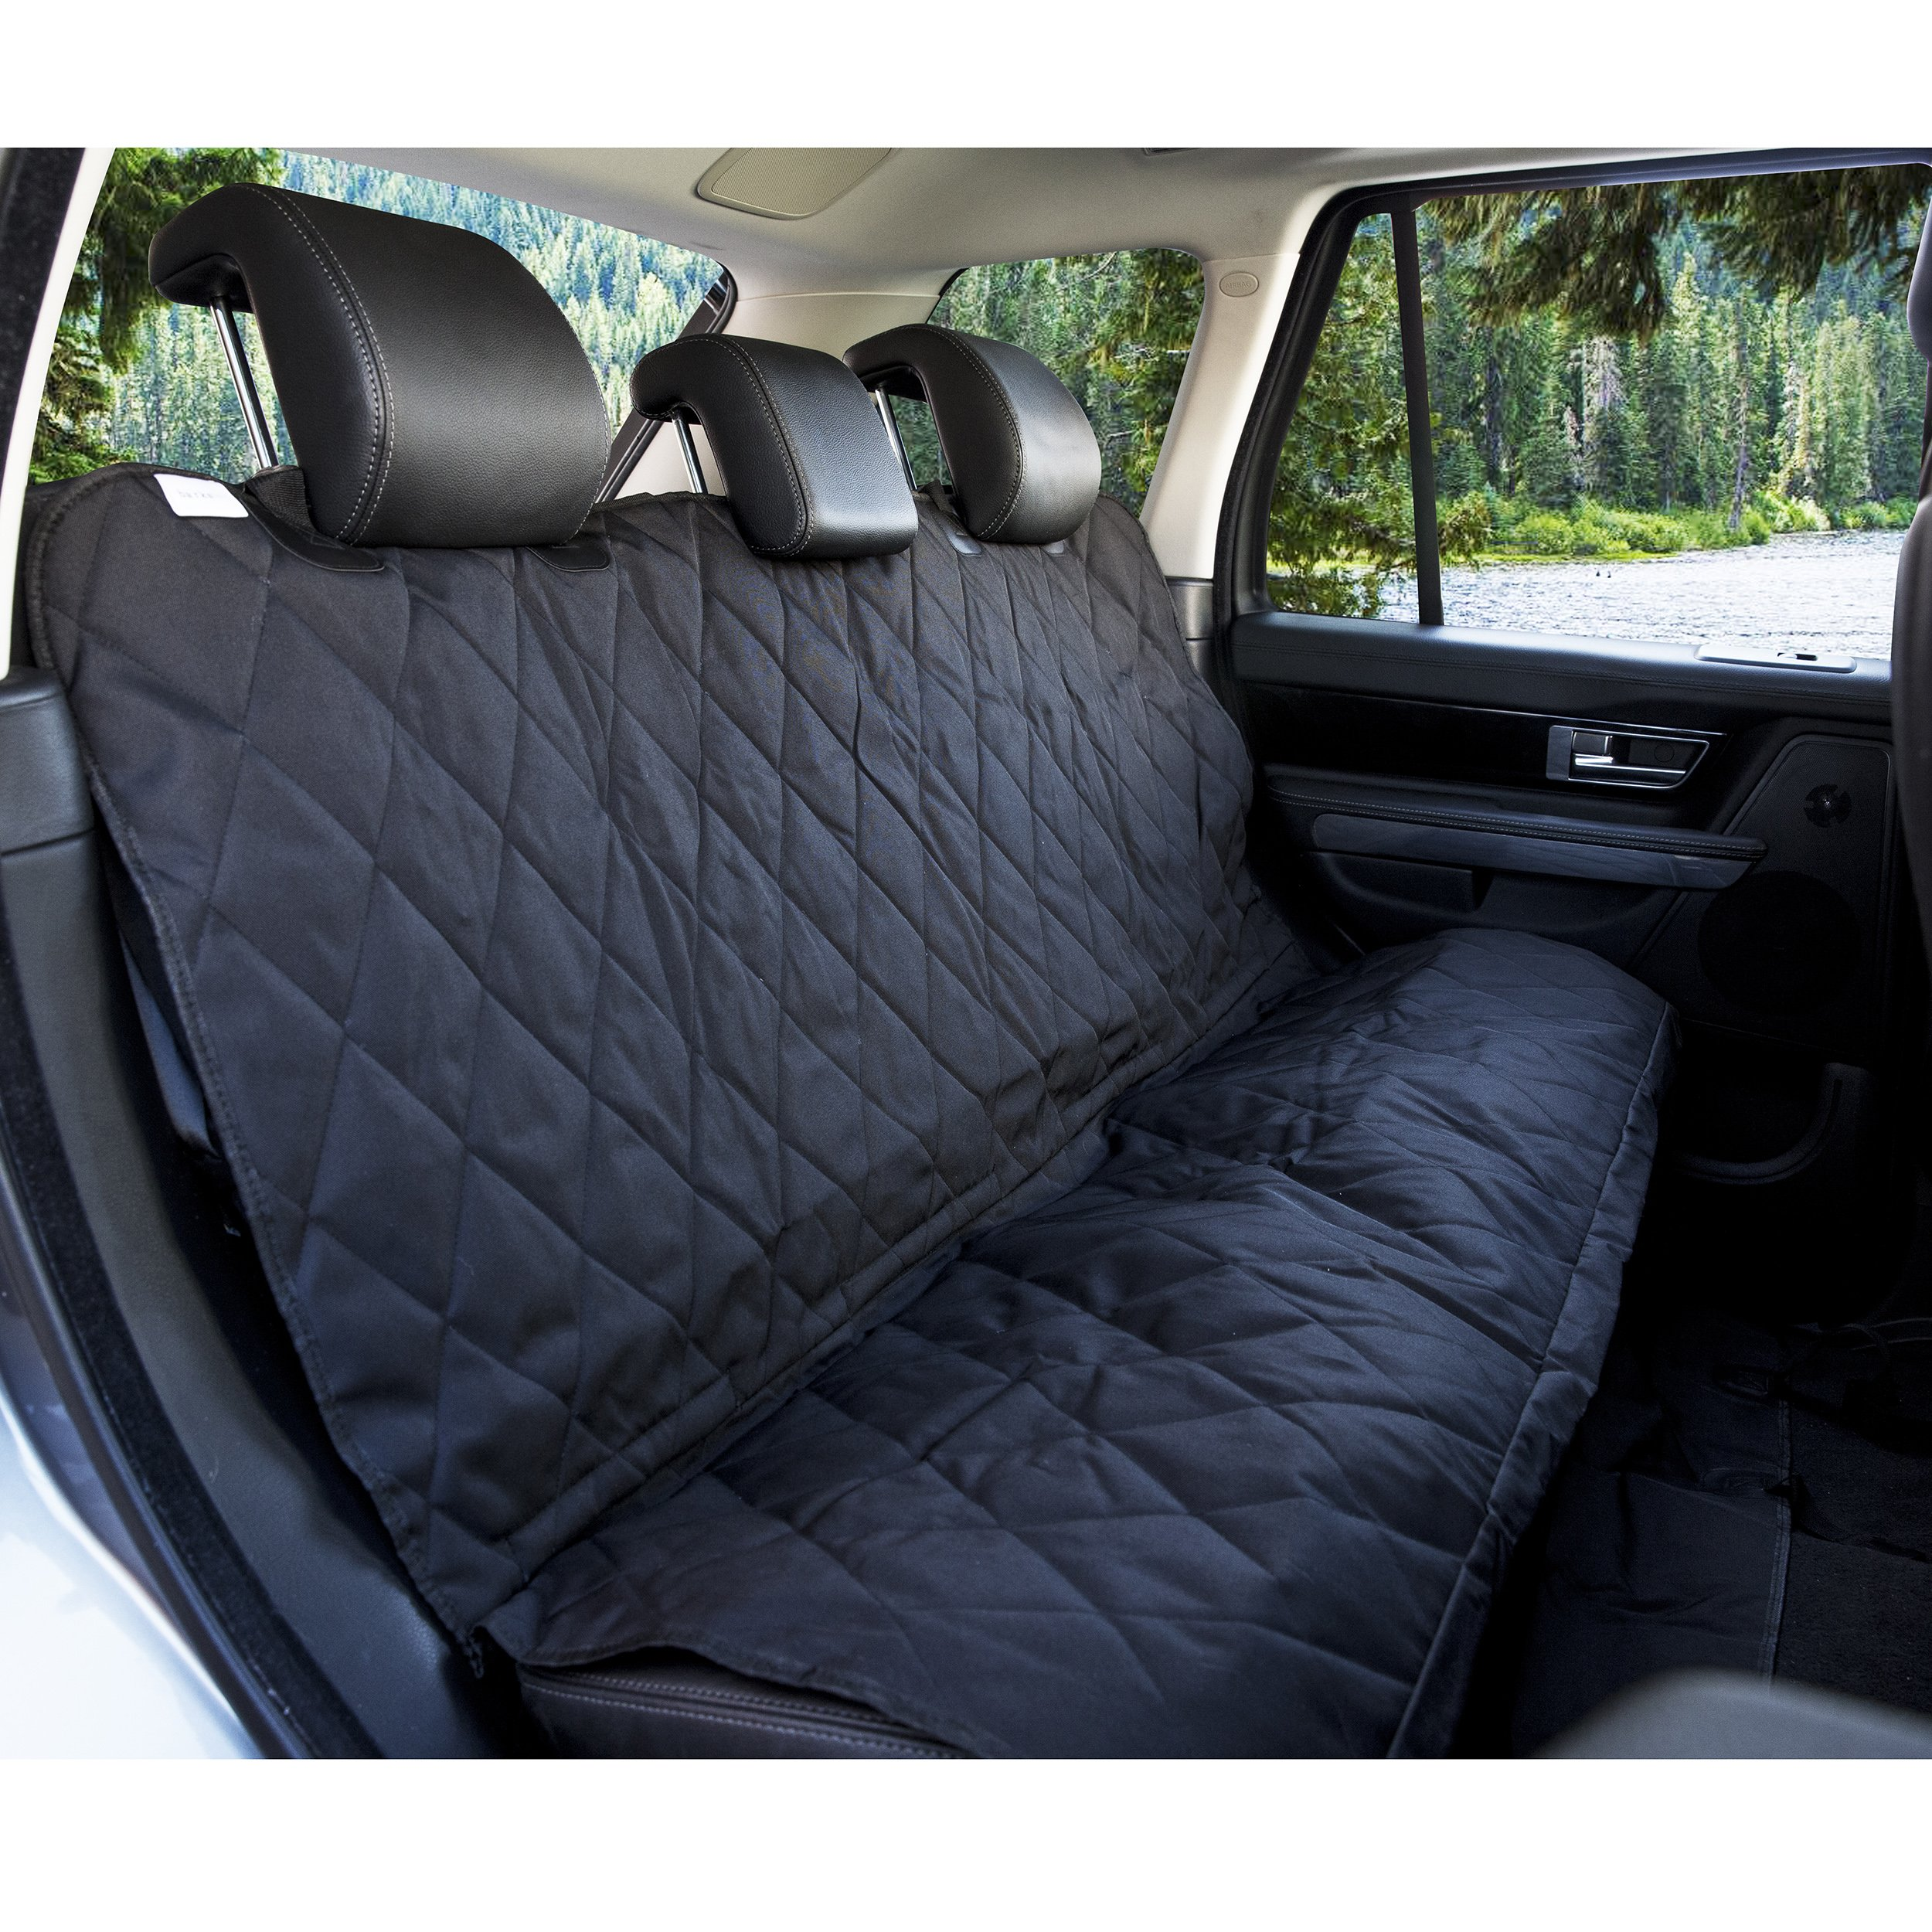 BarksBar Pet Car Seat Cover with Seat Anchors for Cars, Trucks and SUV's, Water Proof and Non-Slip Backing Regular, Black by BarksBar (Image #3)